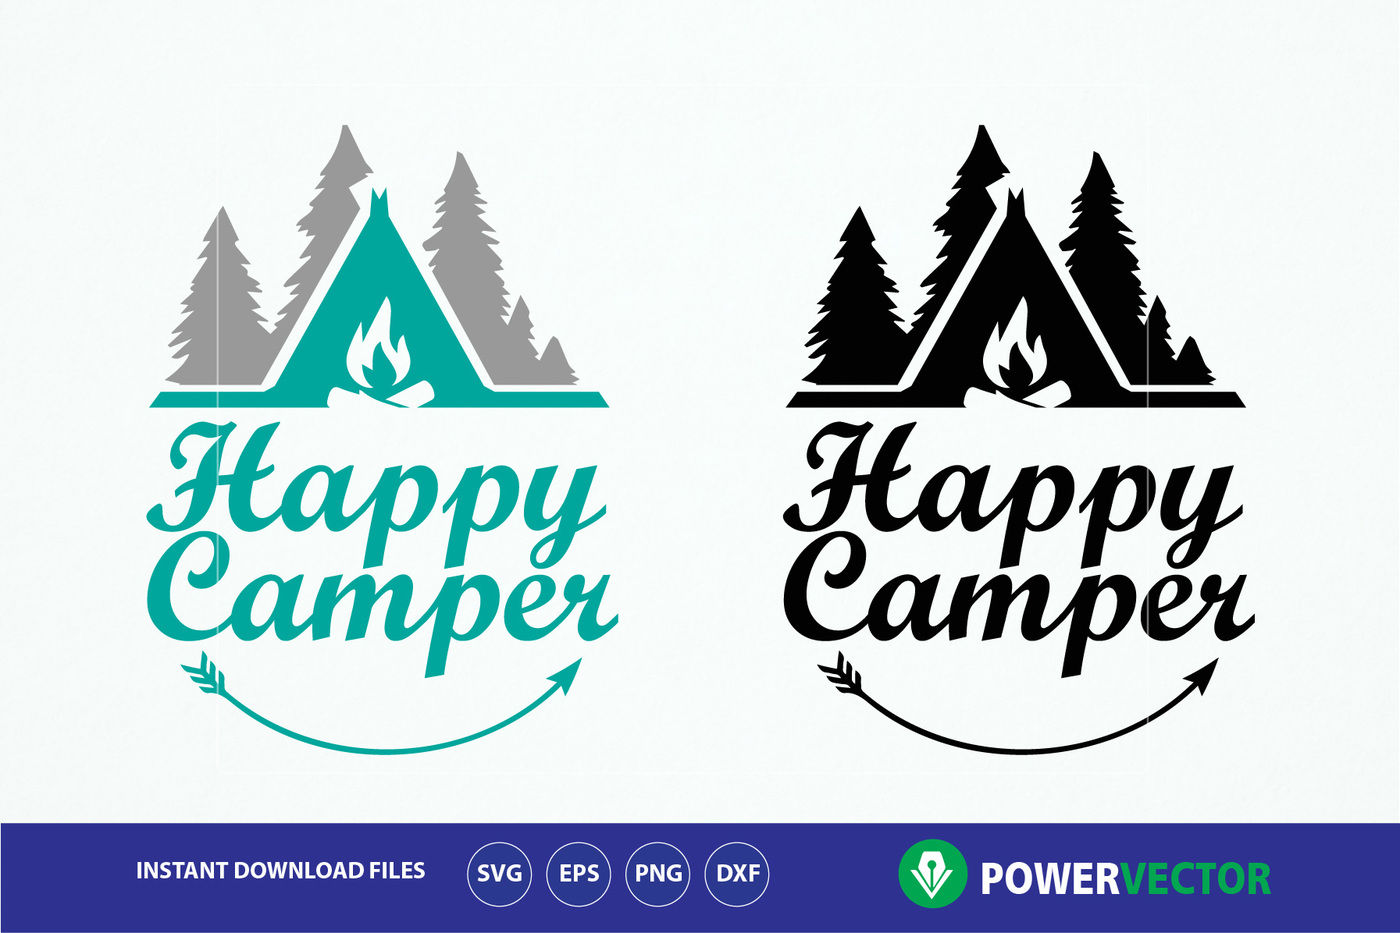 Happy Camper Svg Dxf Eps Png Files By Powervector